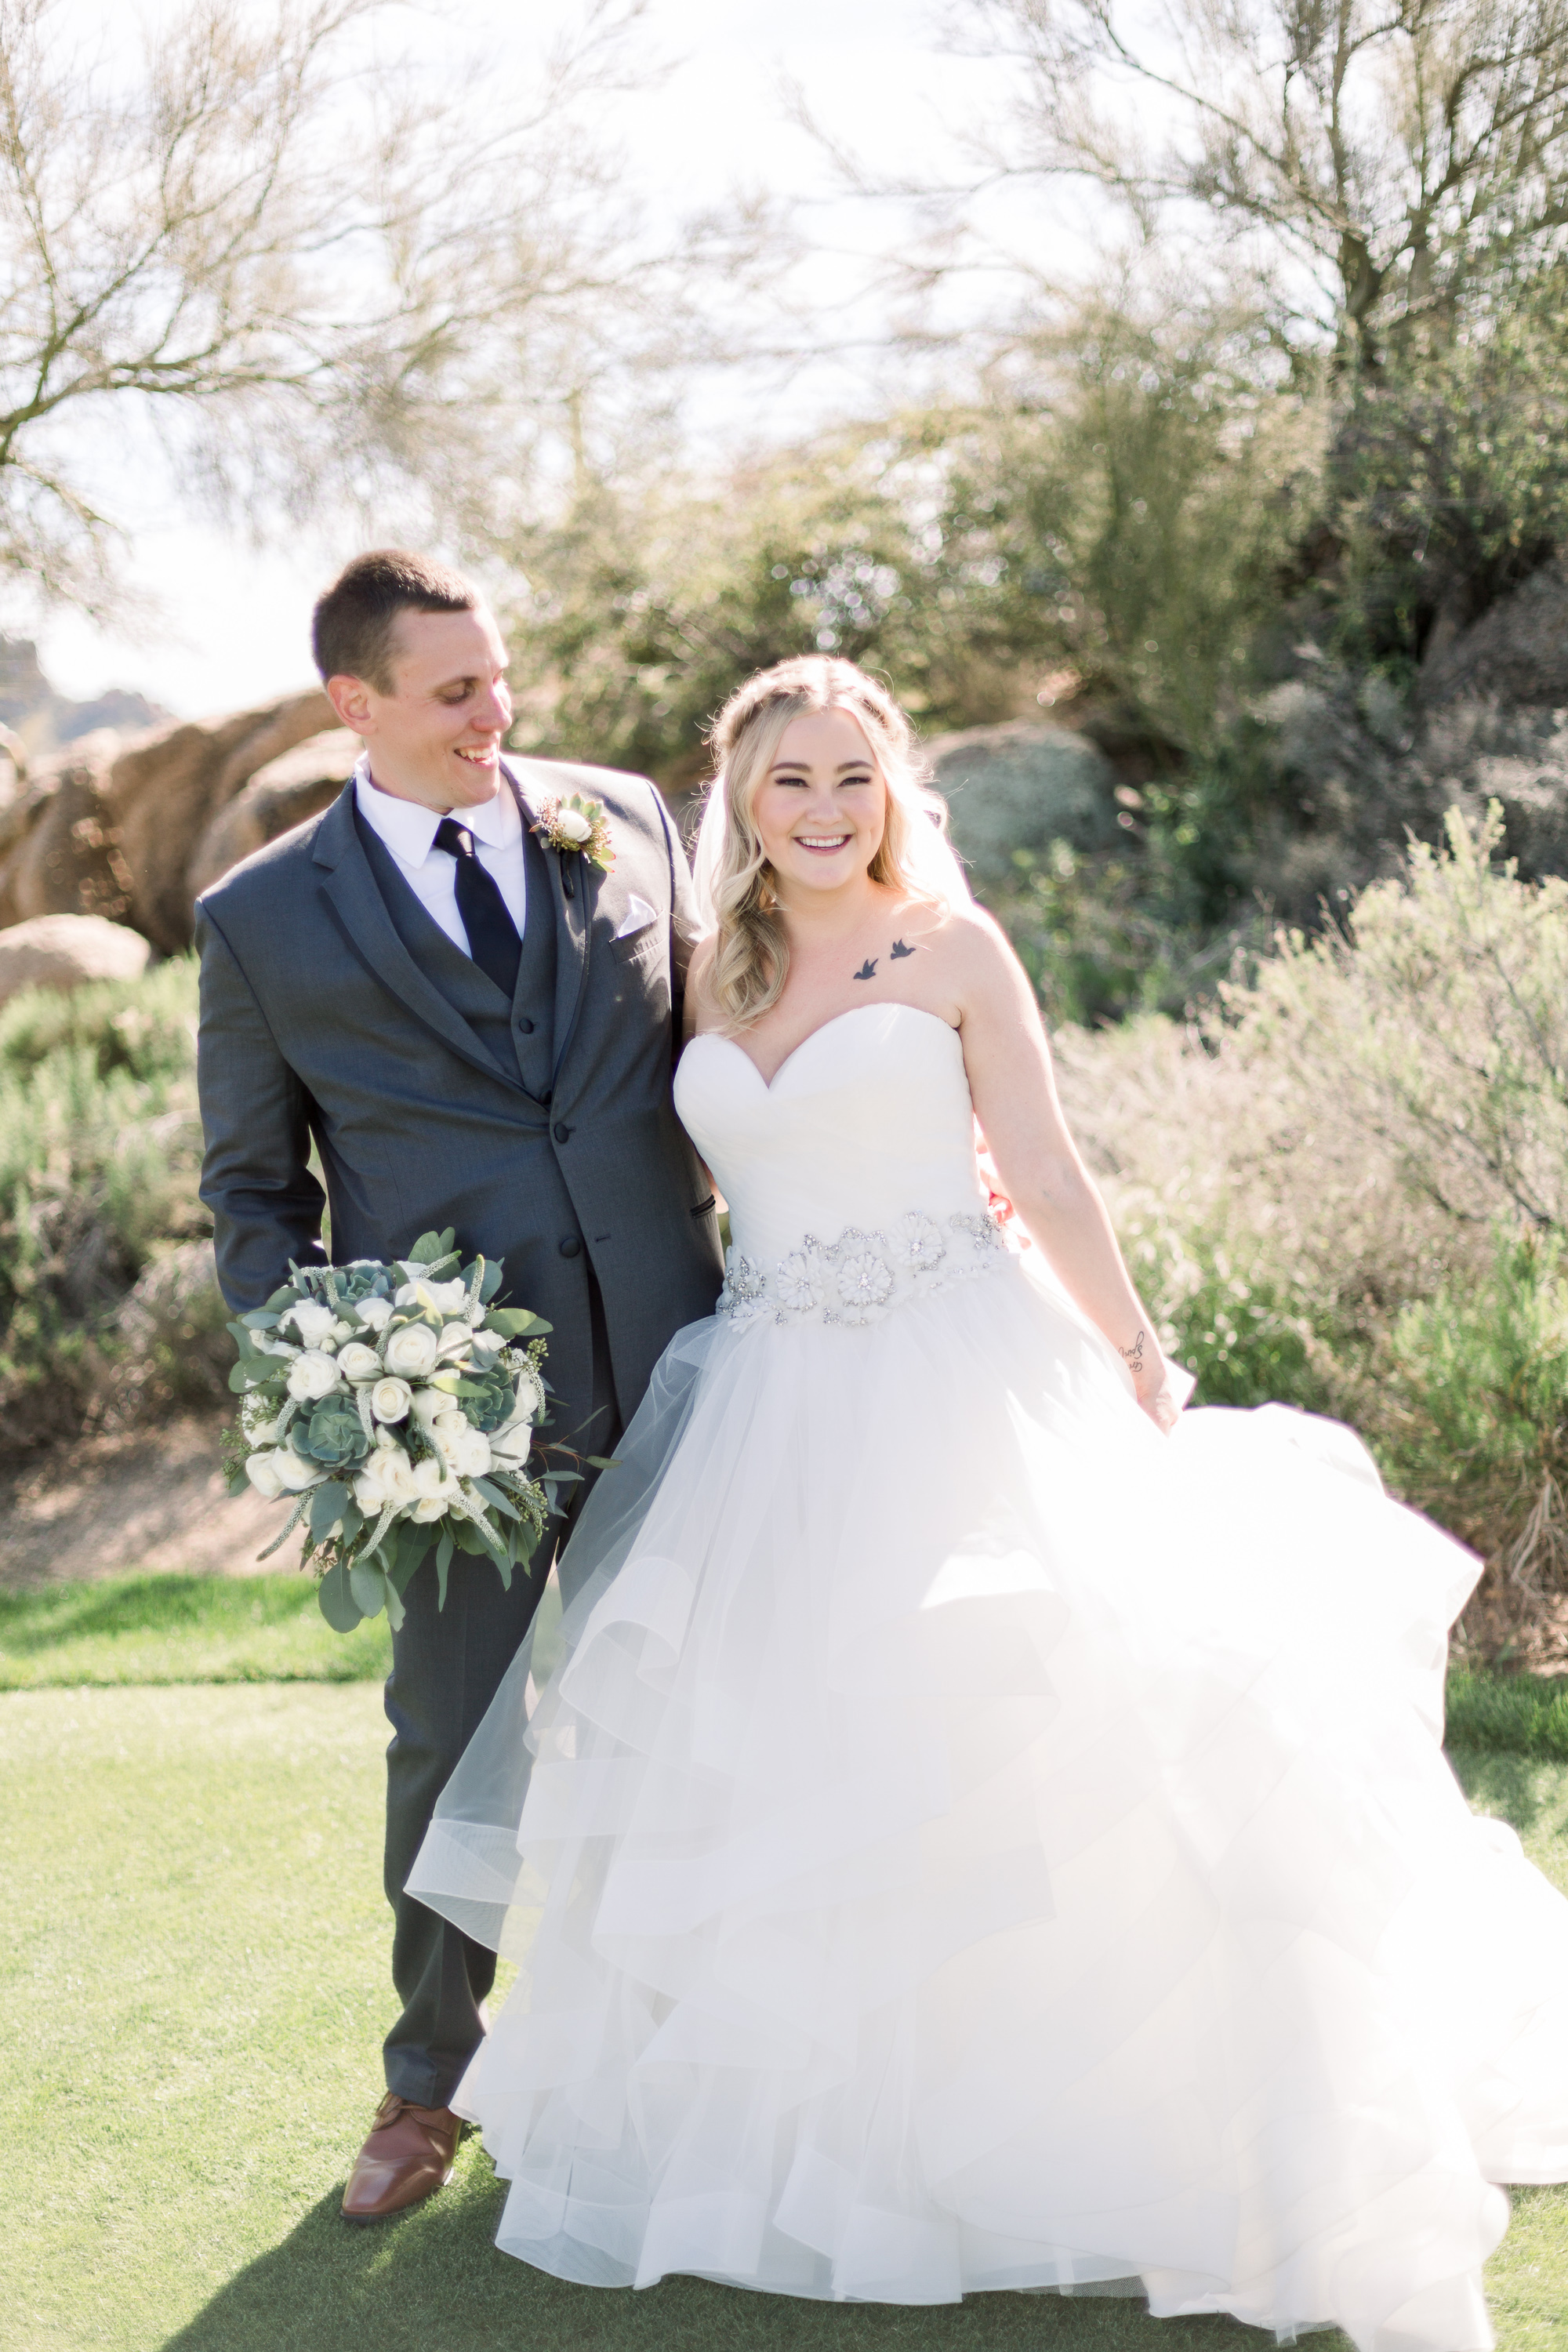 2019.03.23 Sarah & Peter Wedding  224.JPG